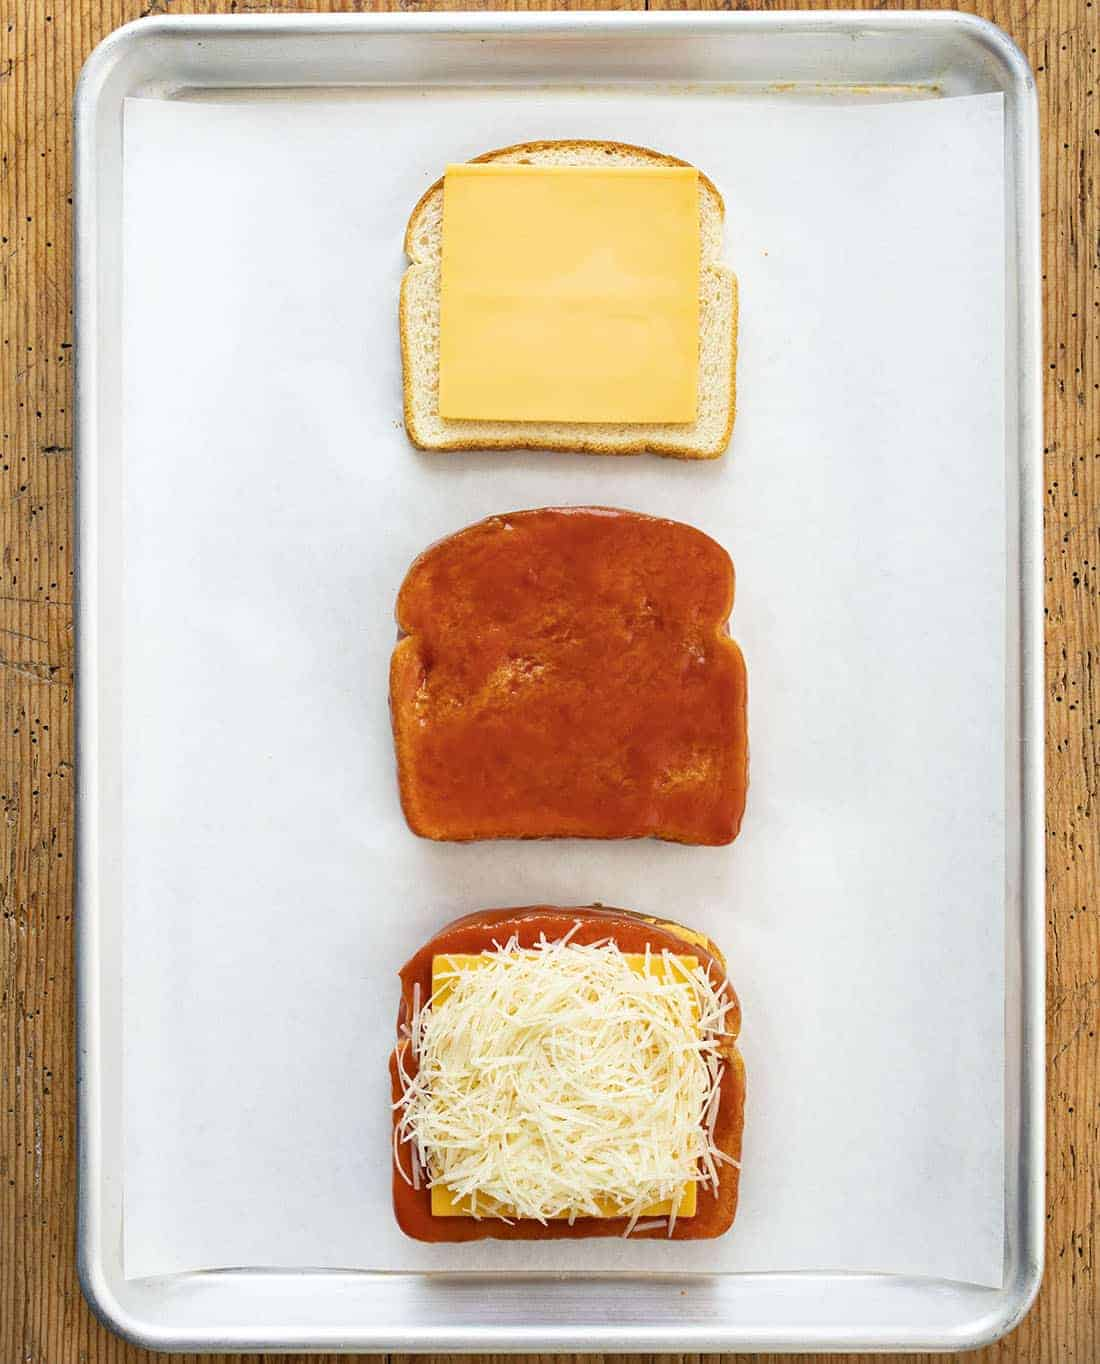 Steps for making Triple Decker Tomato Grilled Cheese